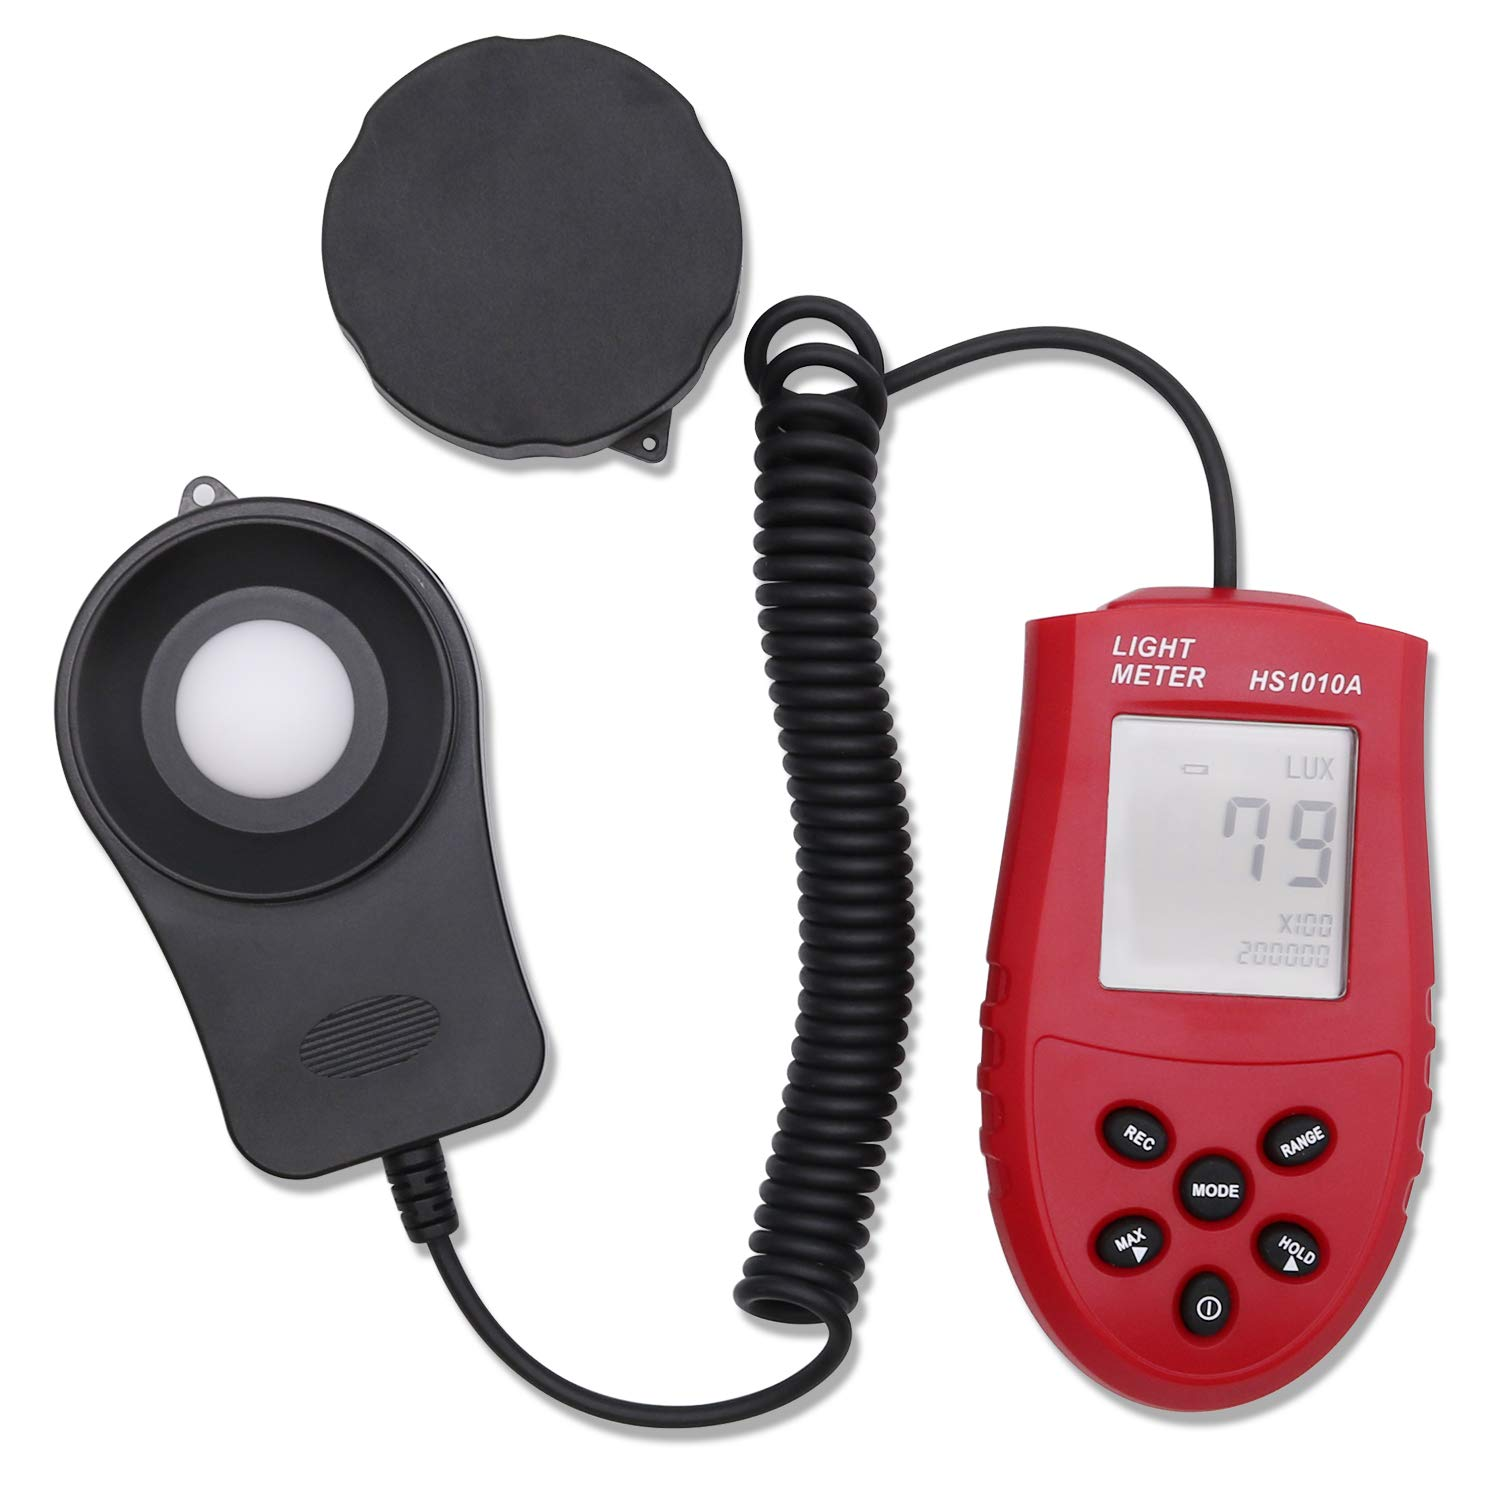 TRENDBOX Digital Light Meter Tester Luxmeter Luminometer Photometer High Accurate 200000 Lux/FC HS1010A with LCD Display Handheld Portable by TRENDBOX